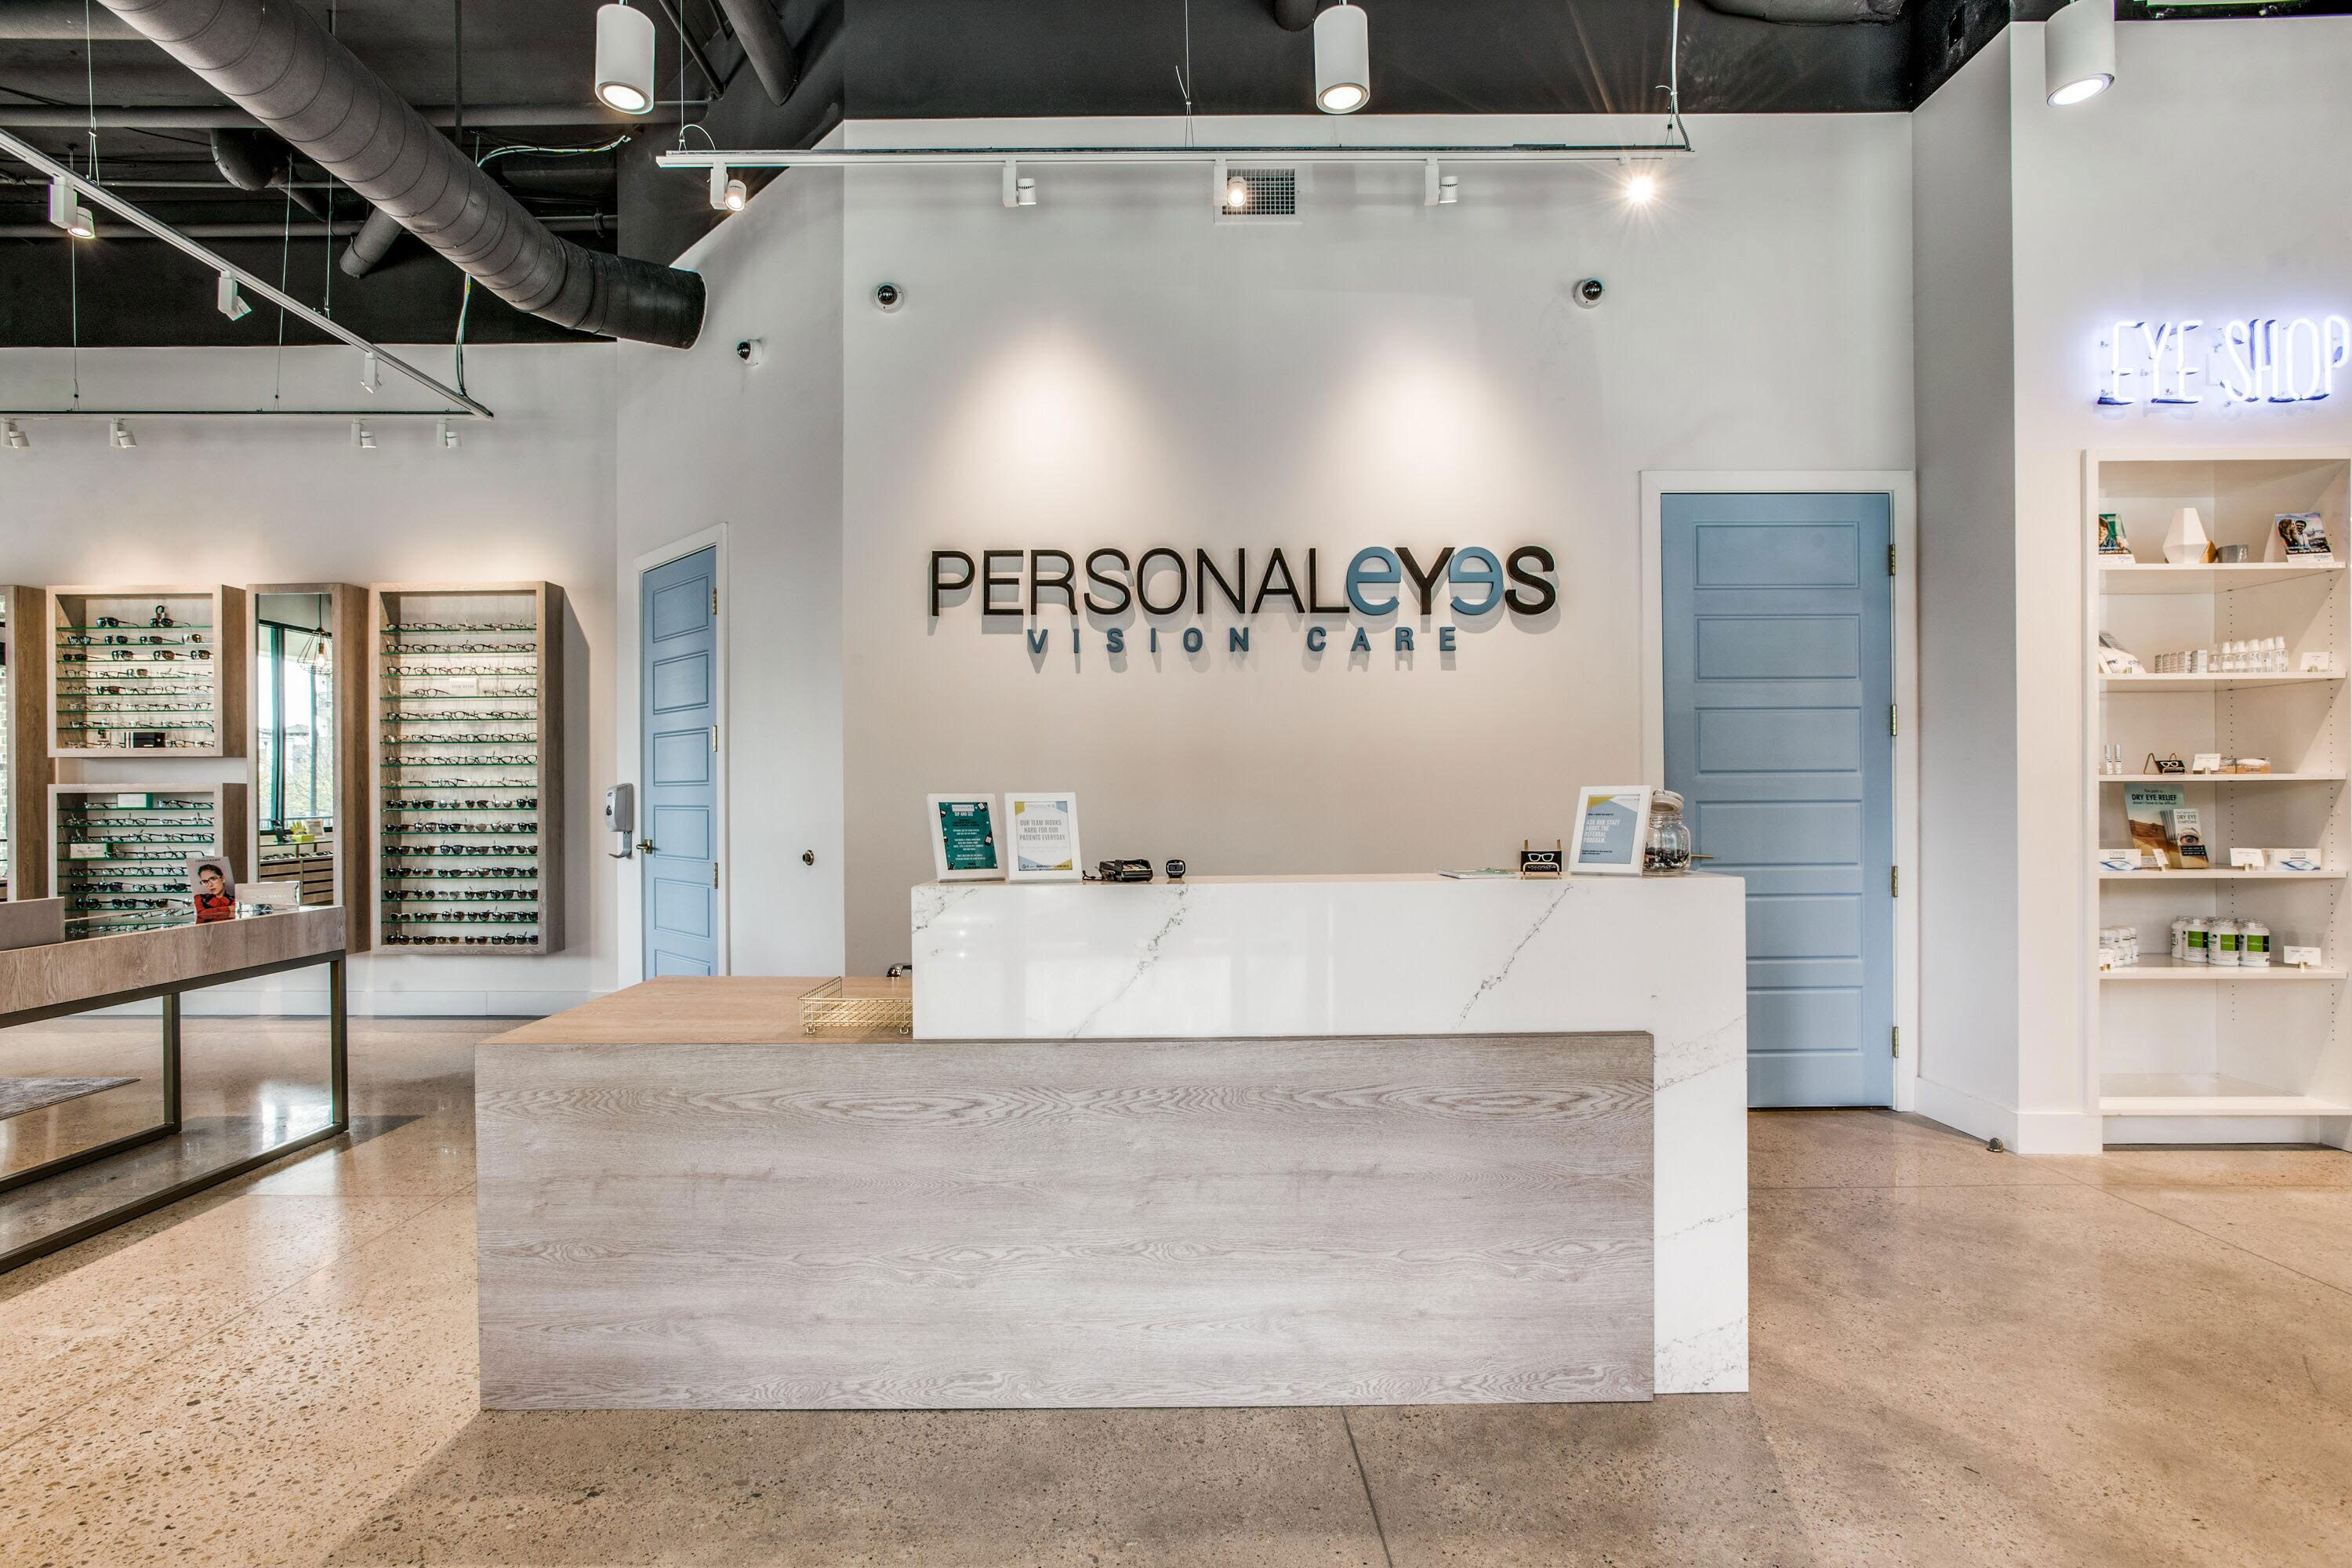 Personaleyes Vision Care.